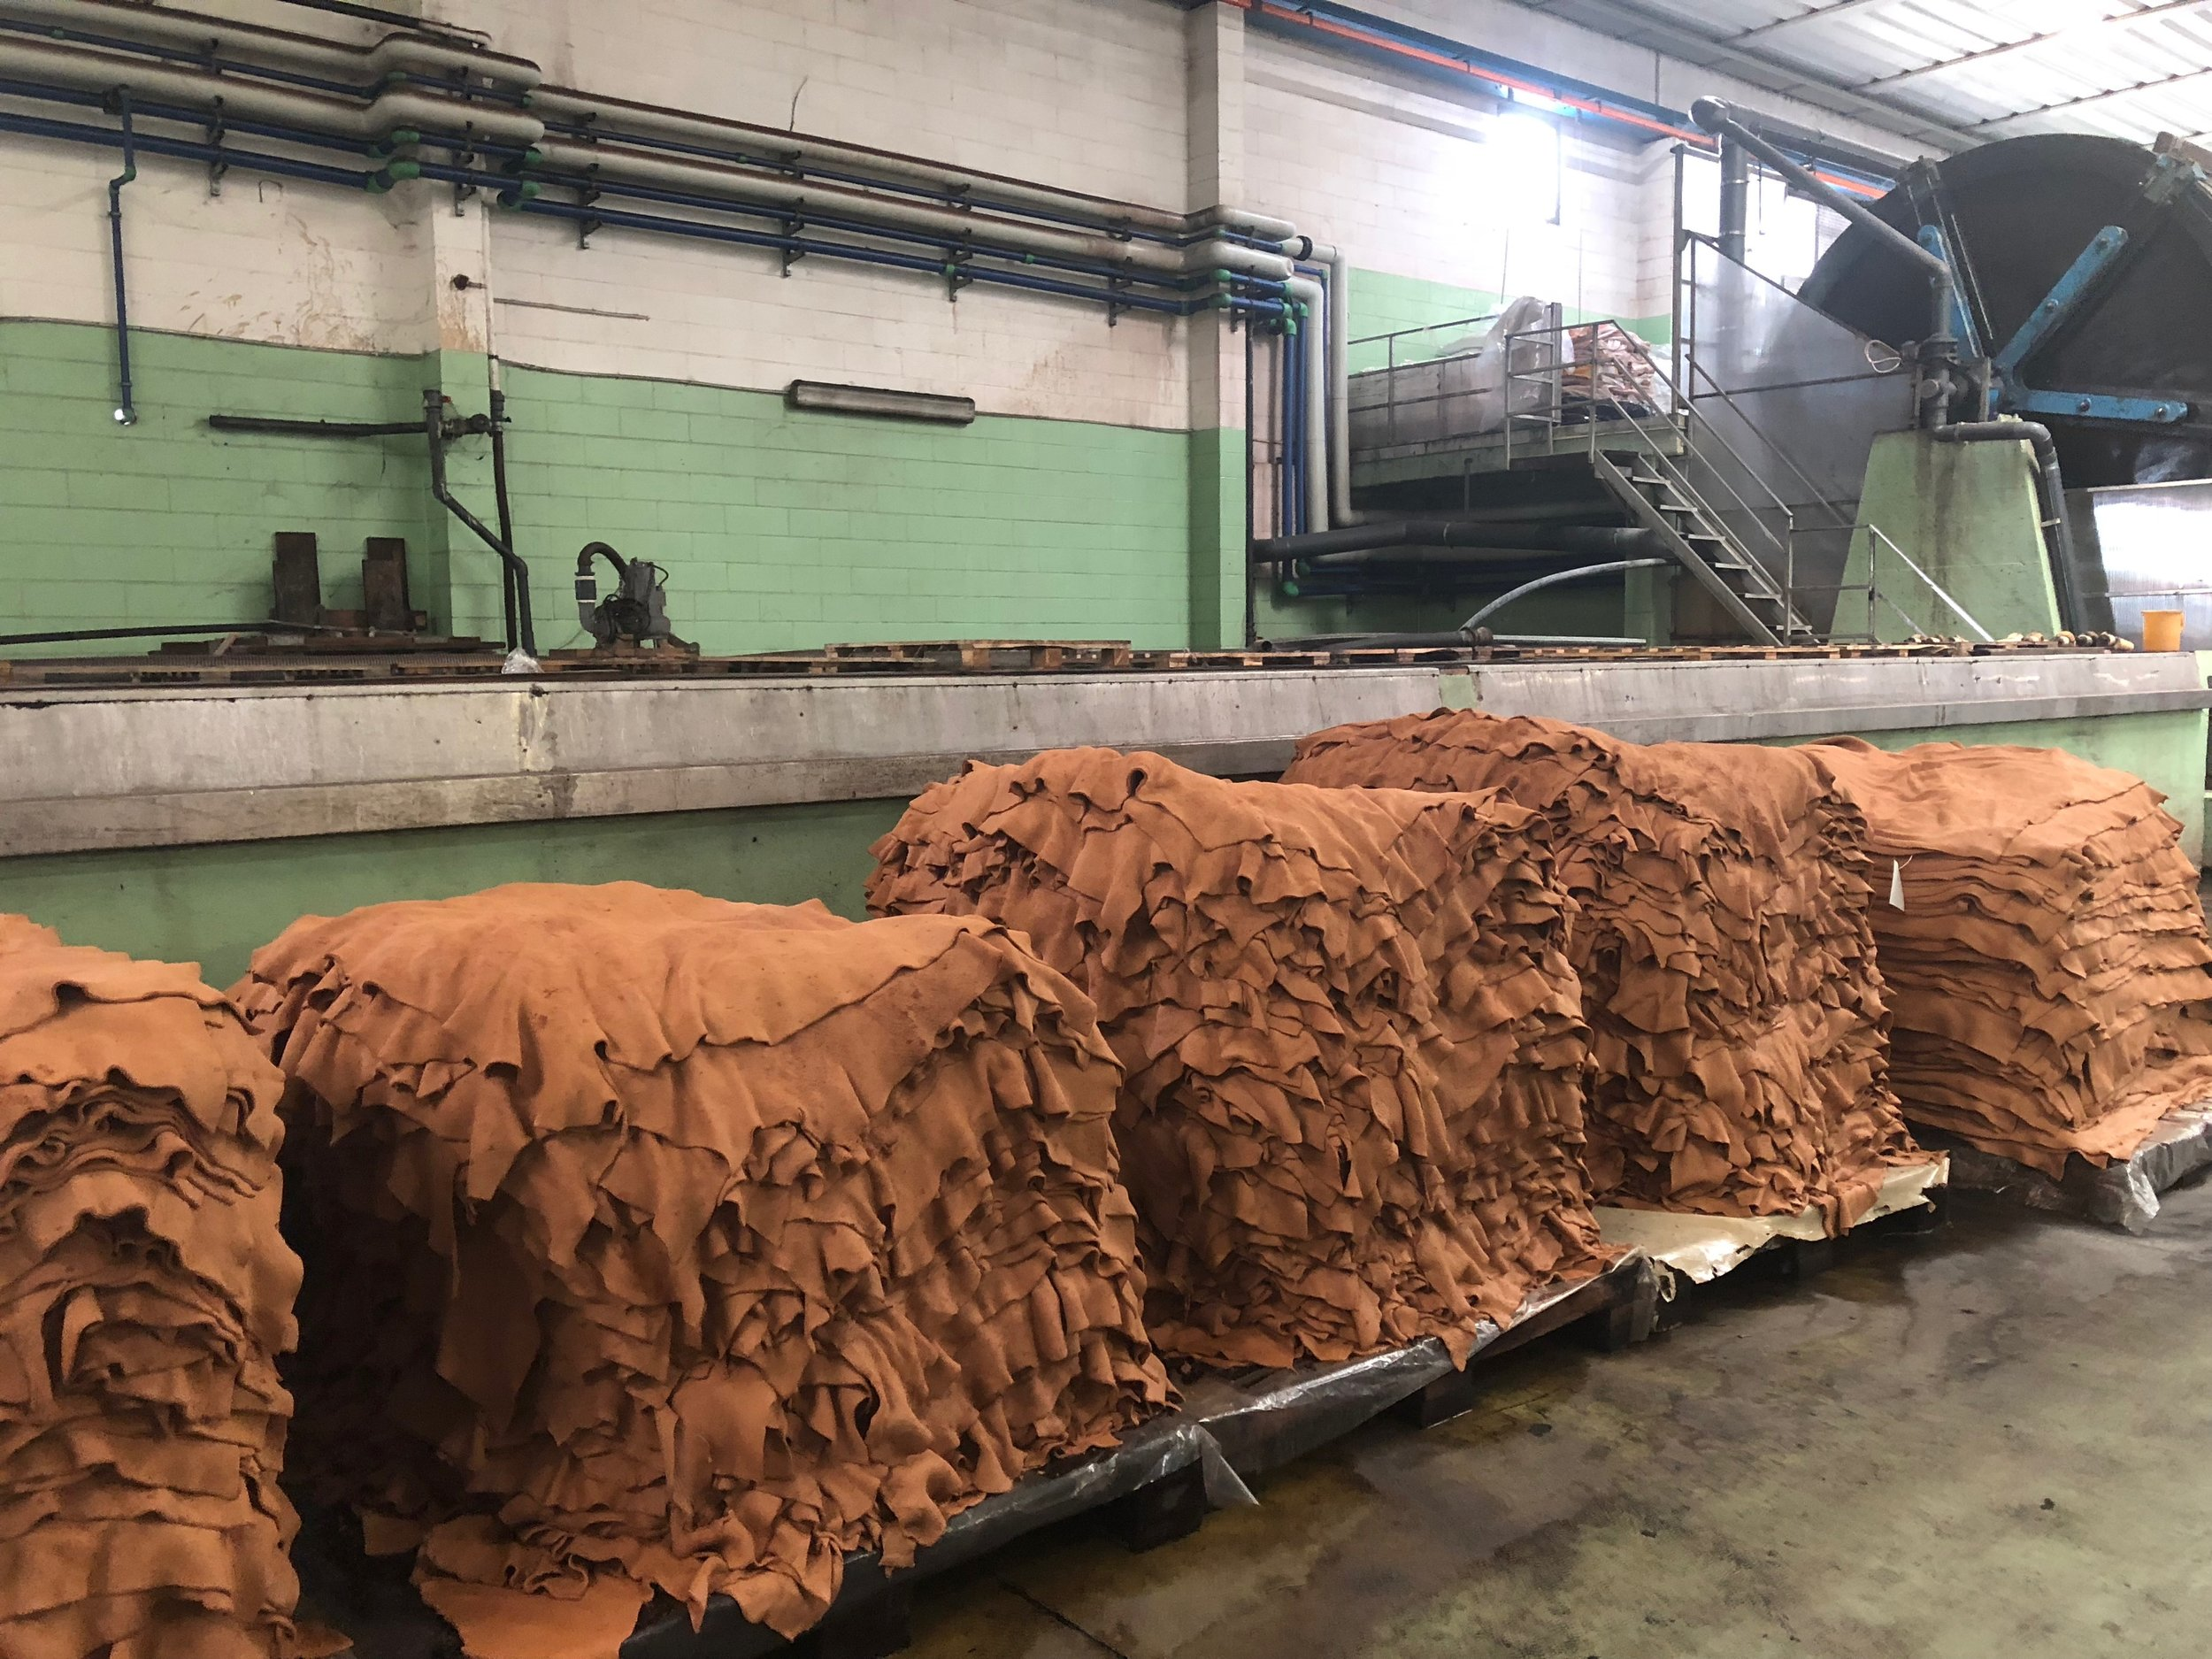 Un Dyed Leather After Tanning Process